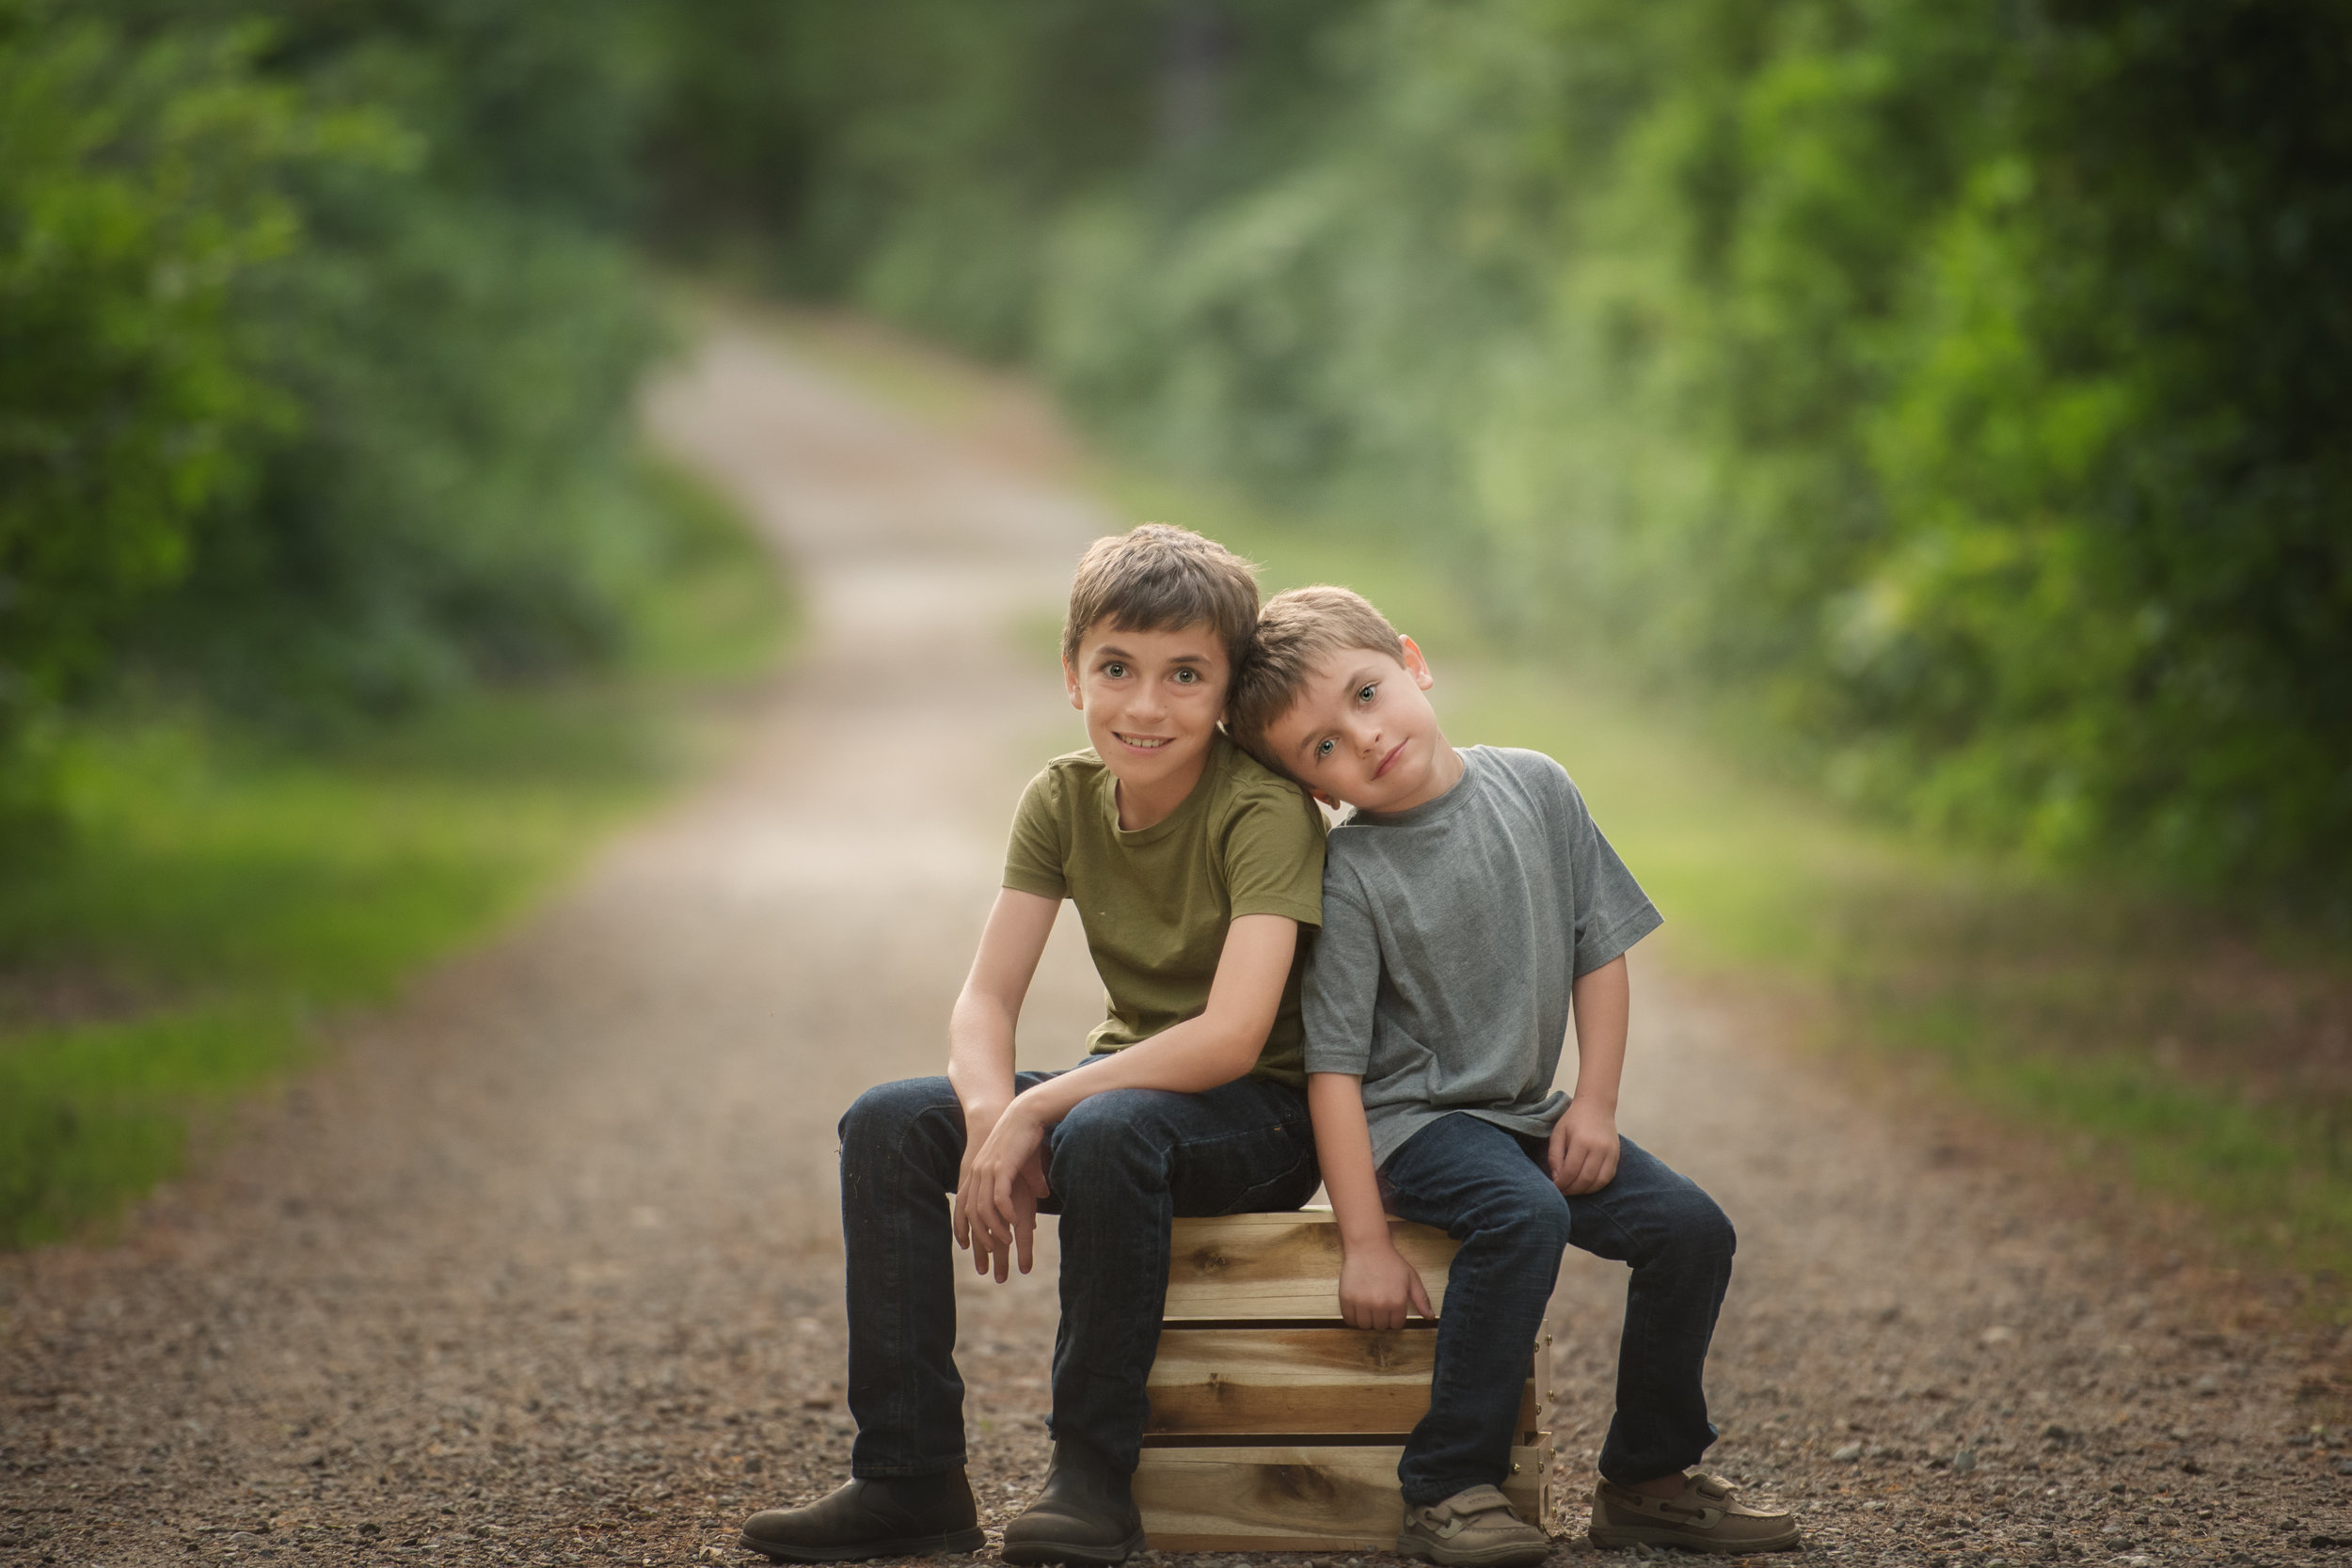 Two Boys on a Crate on a Dirt Road